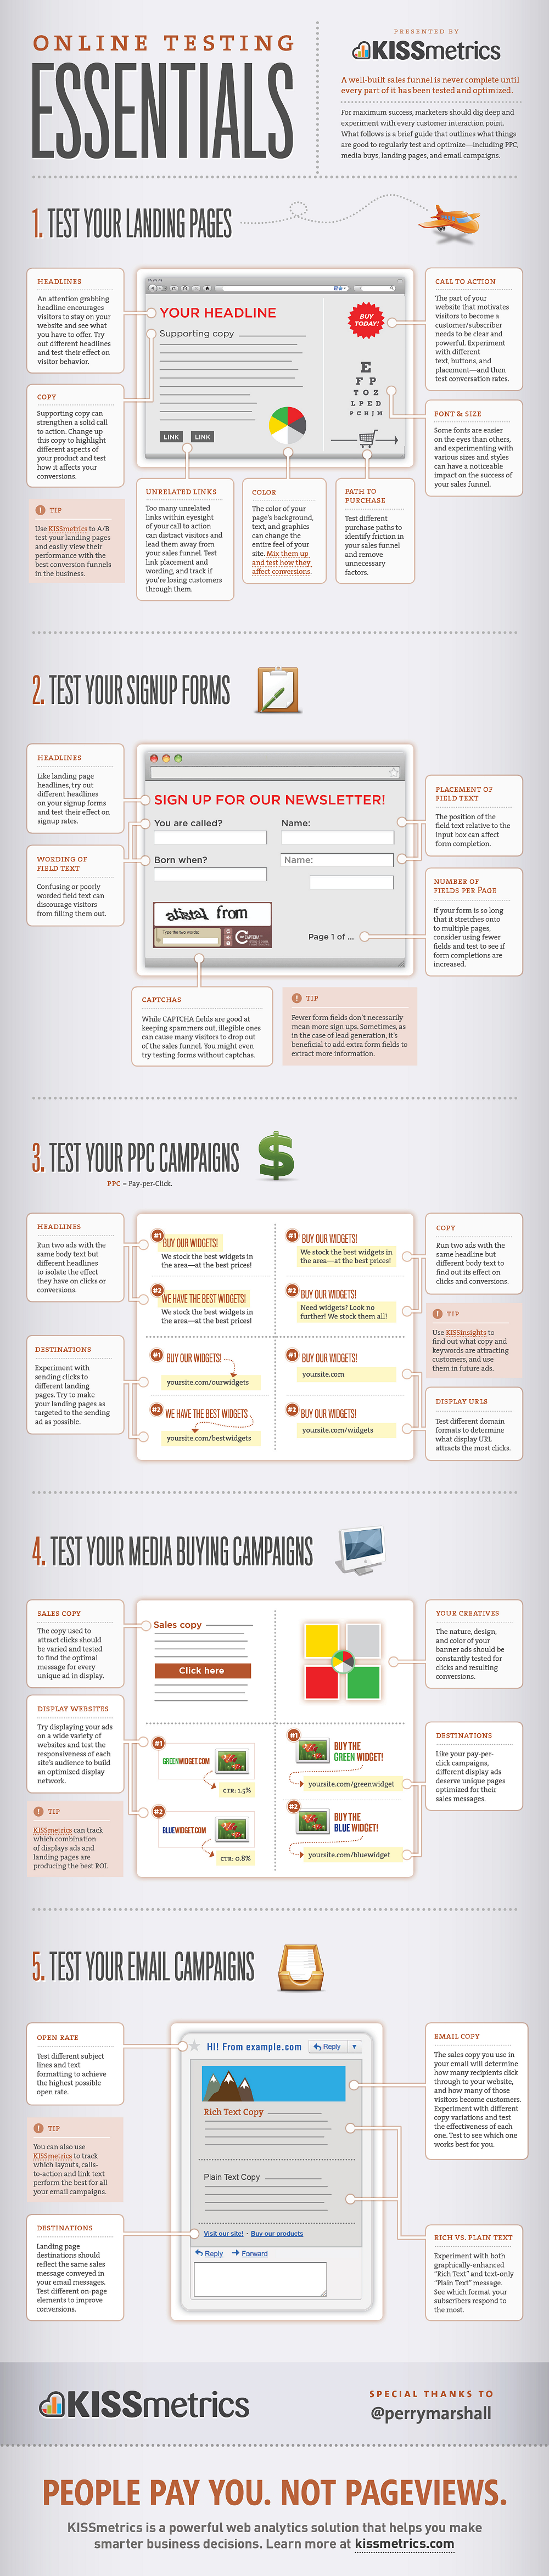 Online Marketing Testing Tips-Infographic